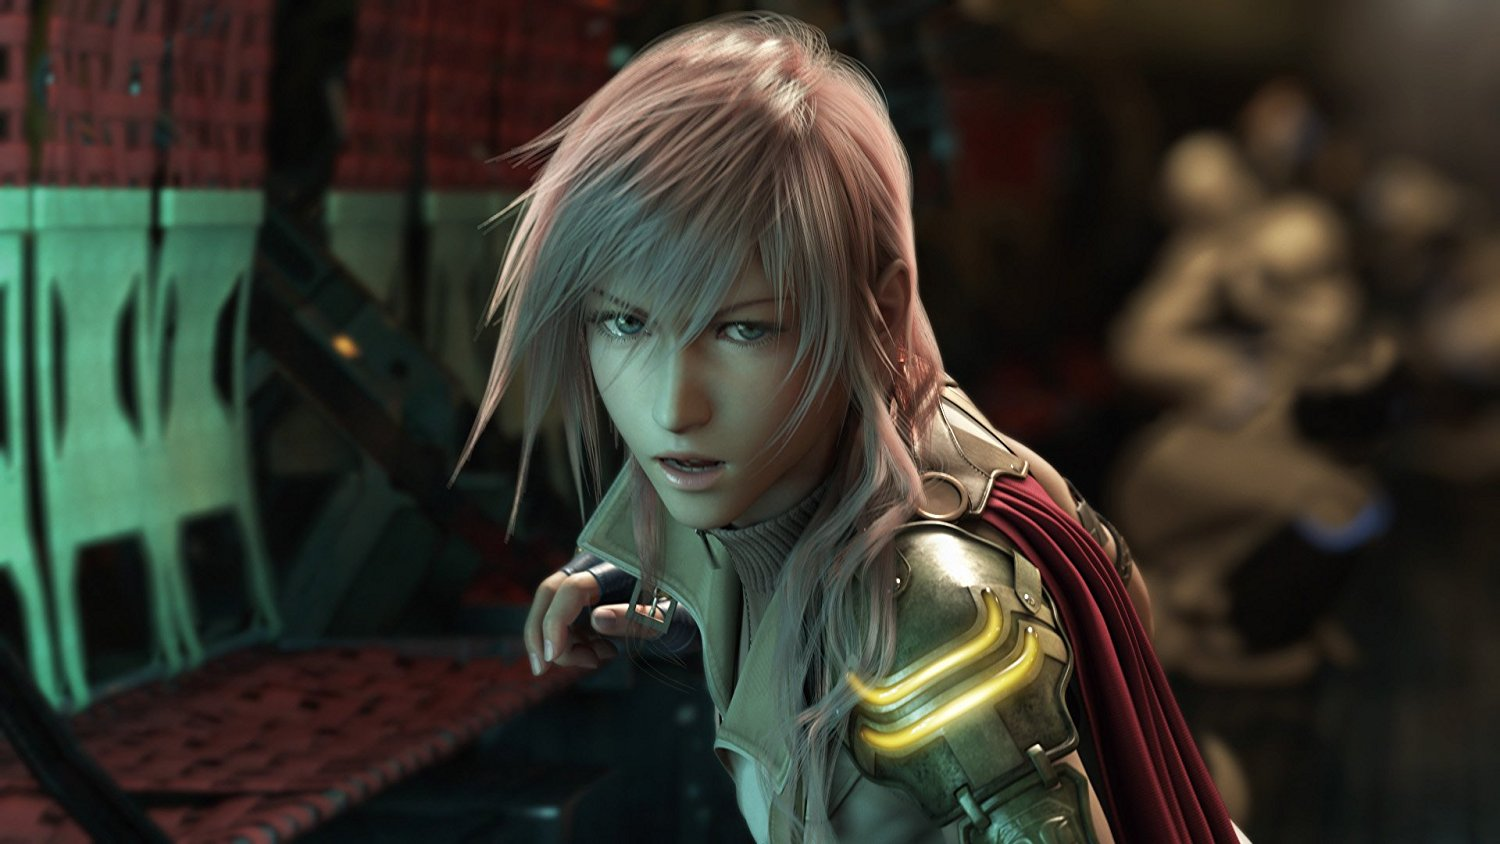 Final Fantasy 13 On Xbox One X Has Two Graphical Modes, Can Render